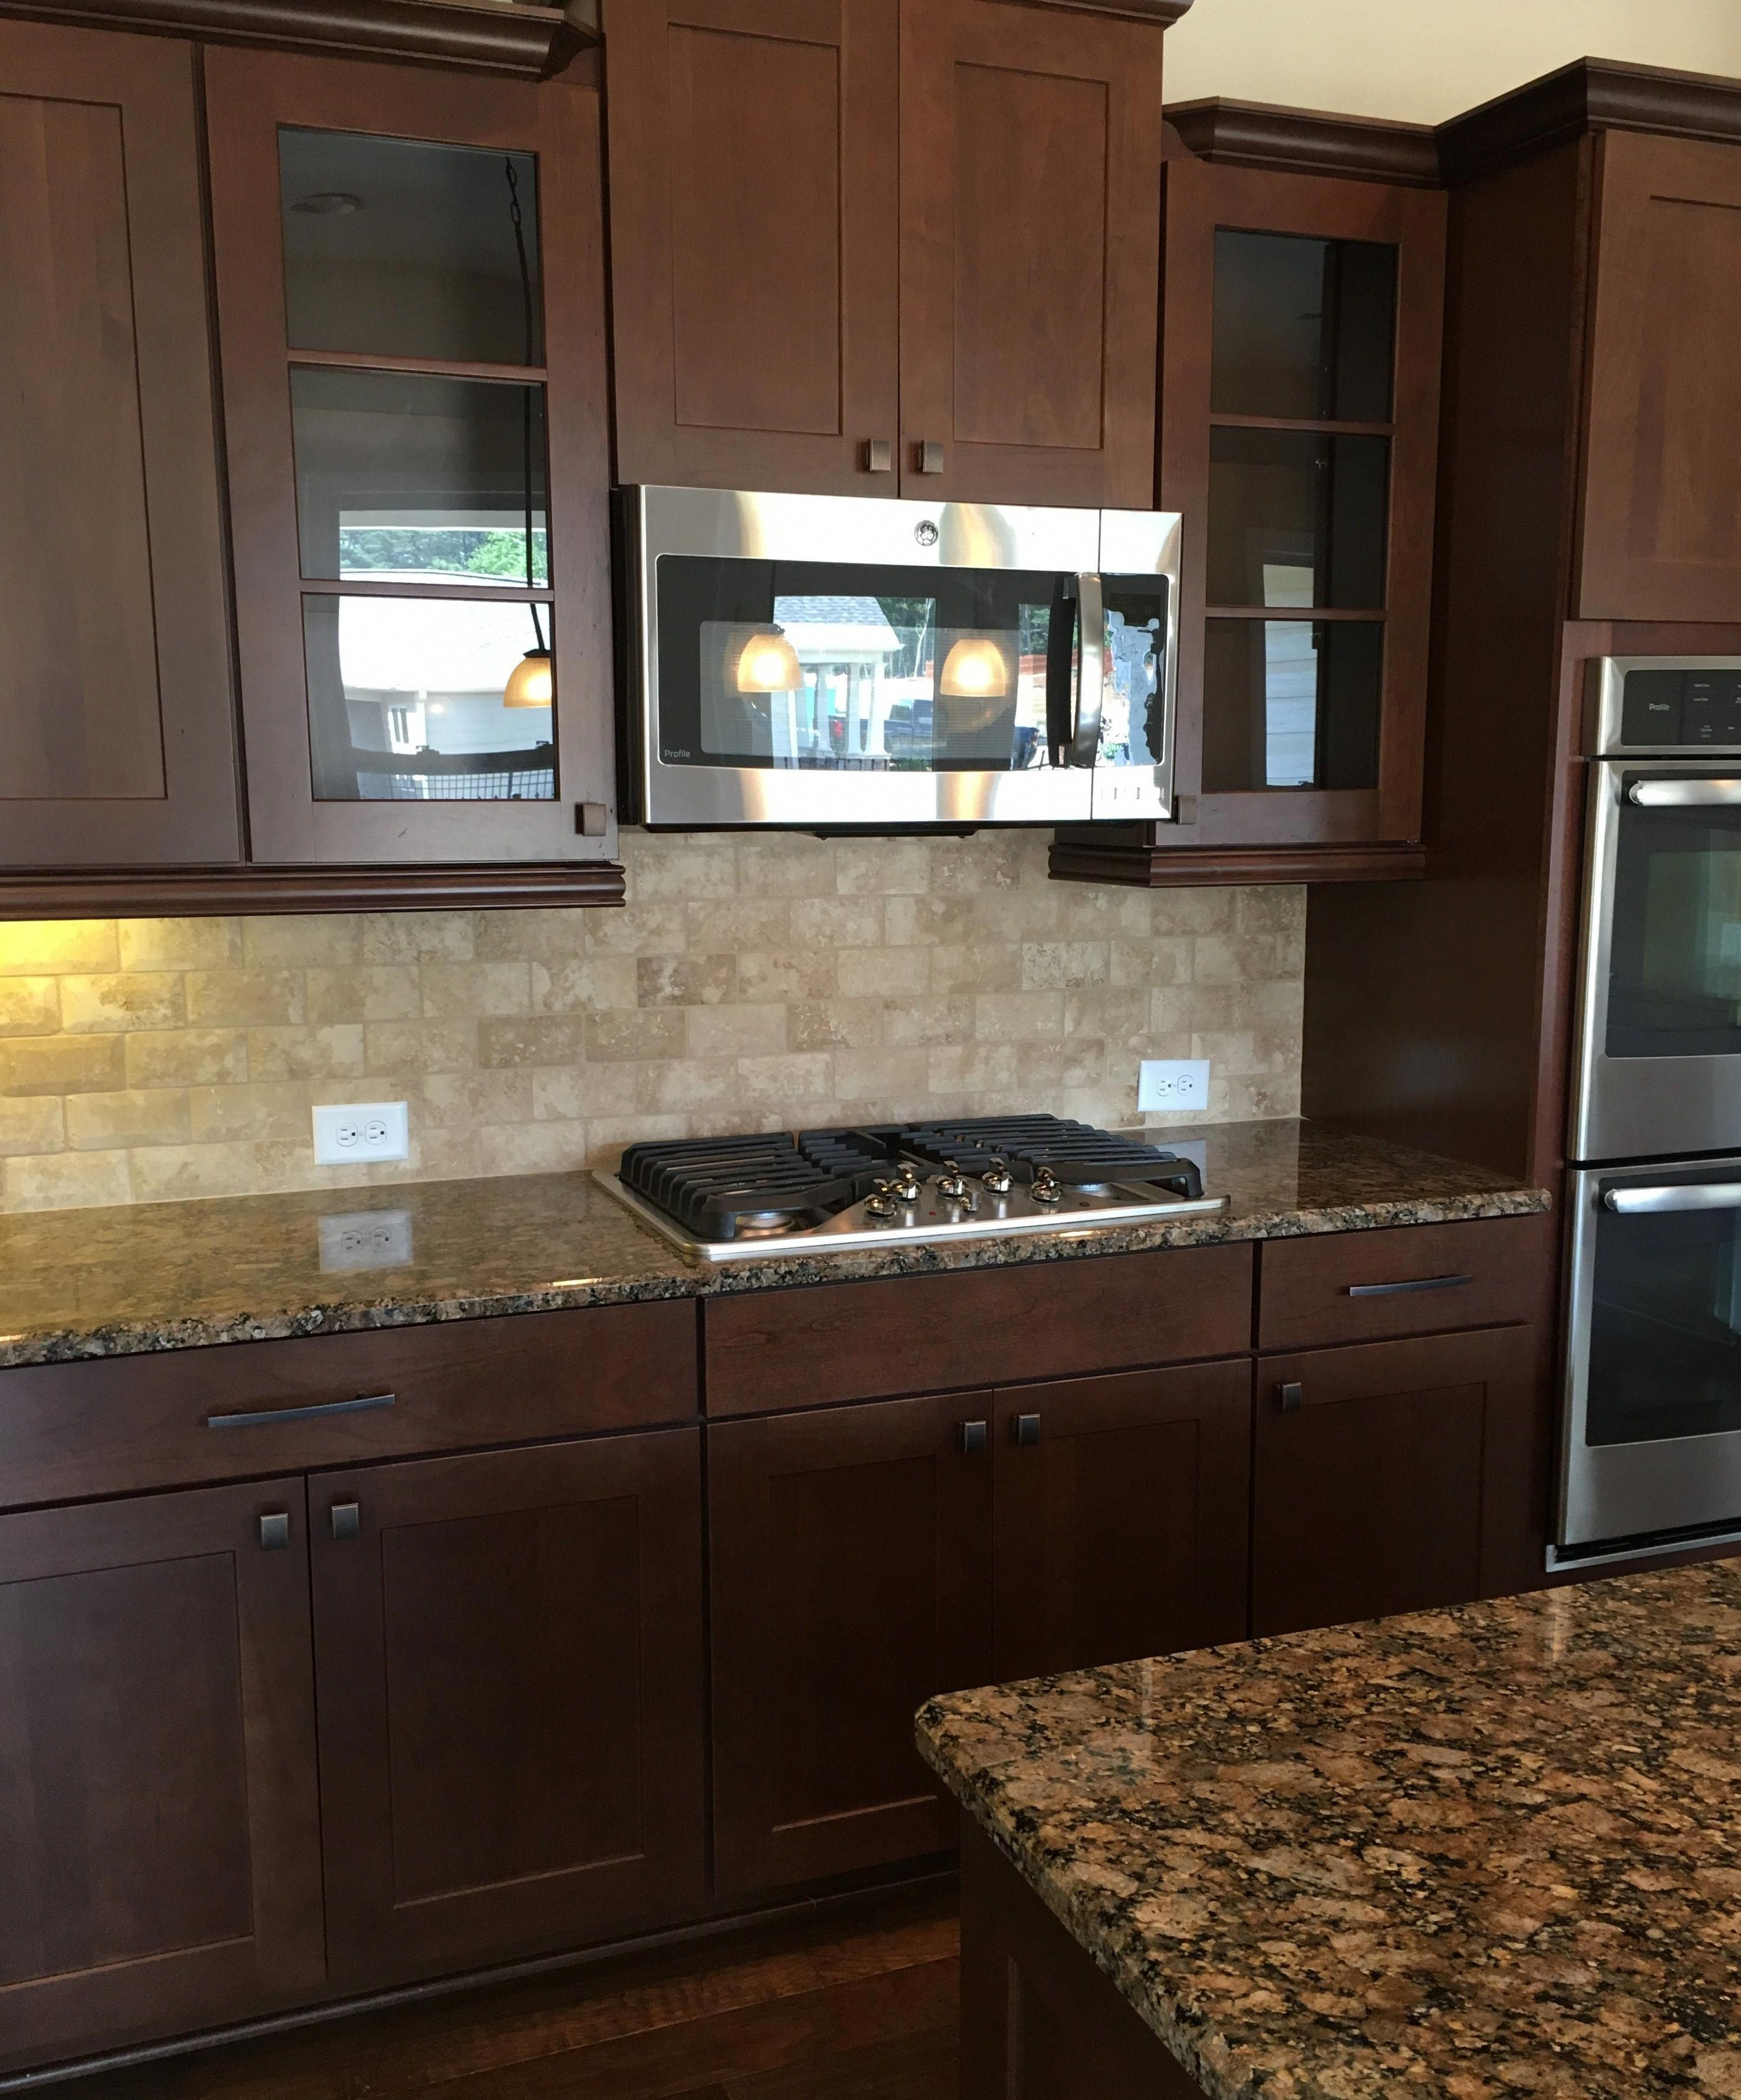 Gourmet Kitchen With Easy To Clean Cooktop Beautiful Mexican Traverti Kitchen Cabinets And Backsplash Cherry Cabinets Kitchen Backsplash Kitchen Dark Cabinets